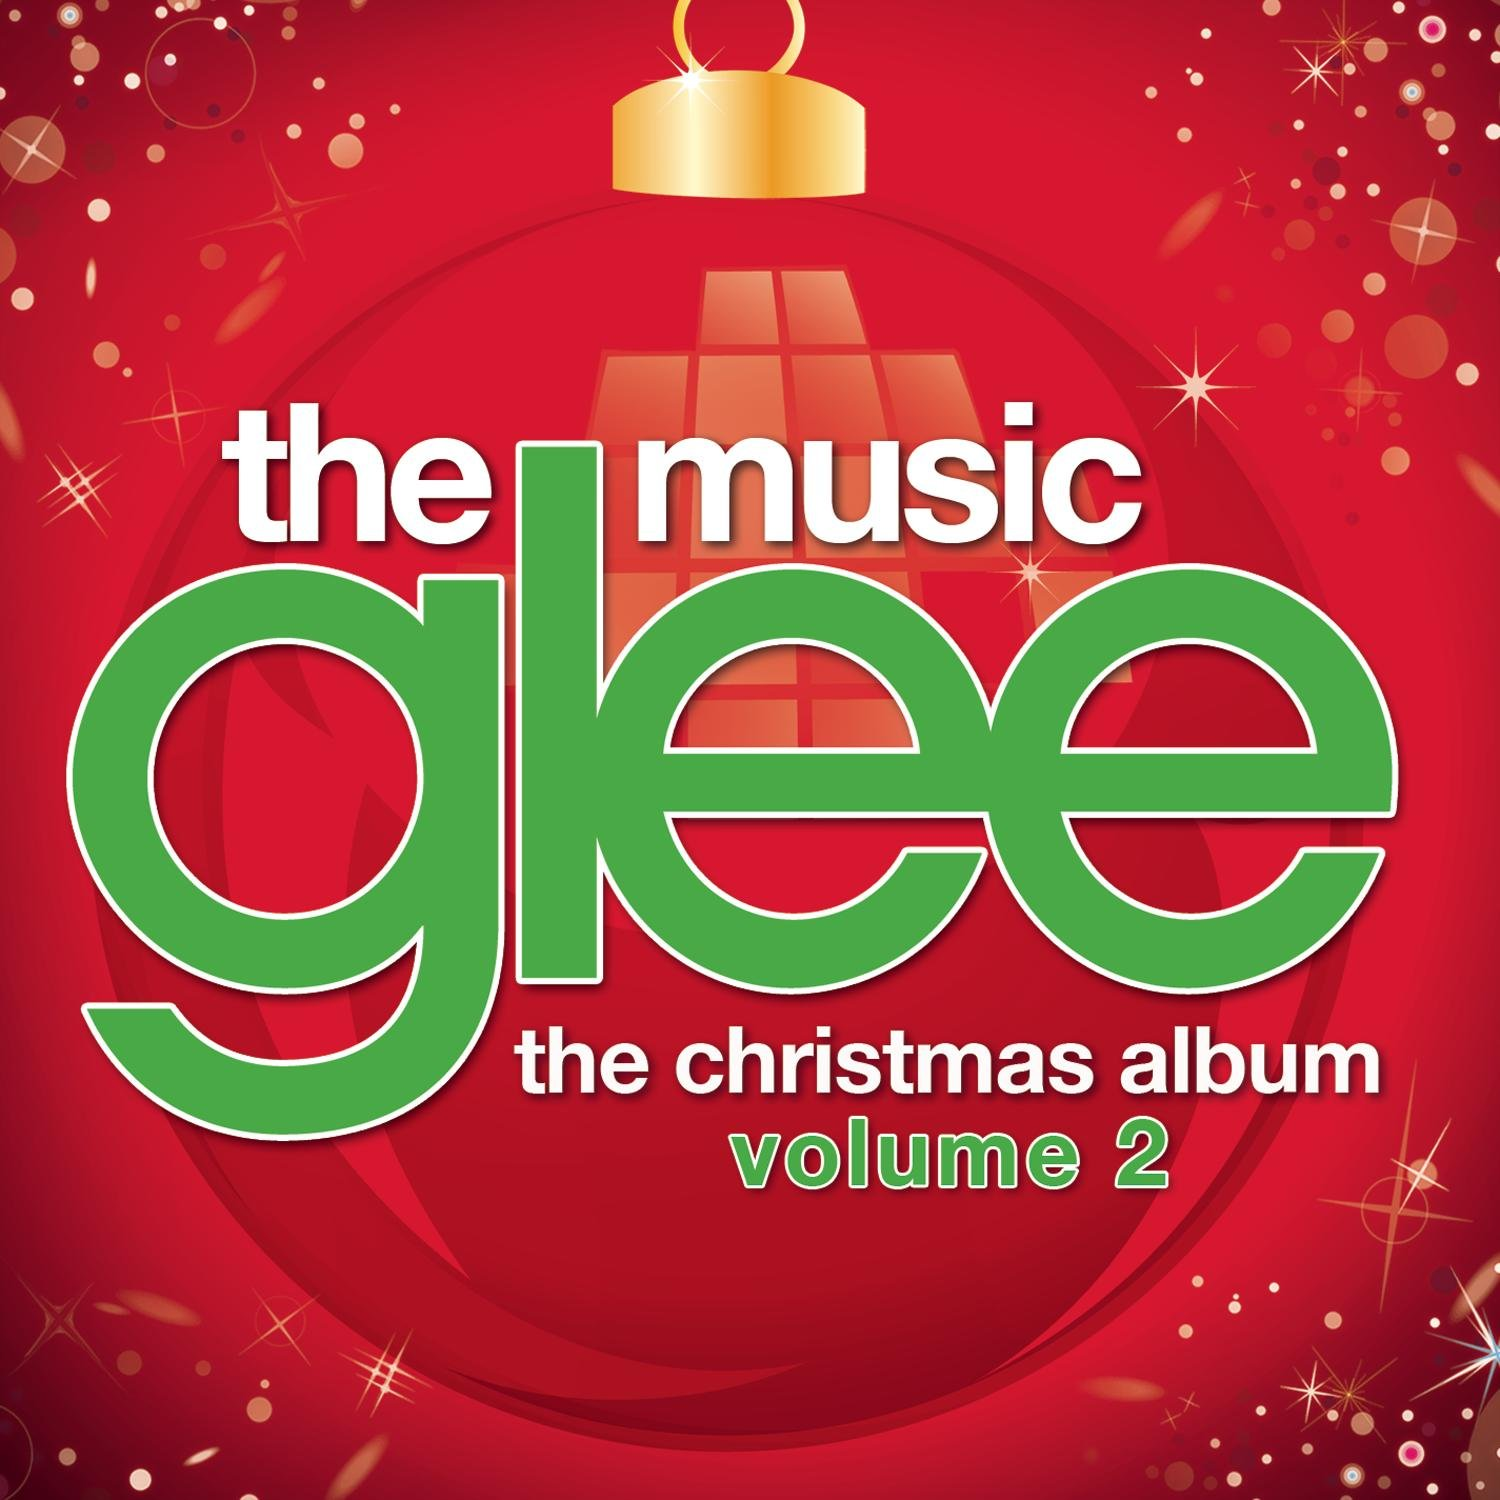 Glee Cast - Glee: The Music, The Christmas Album Volume 2 - Amazon ...